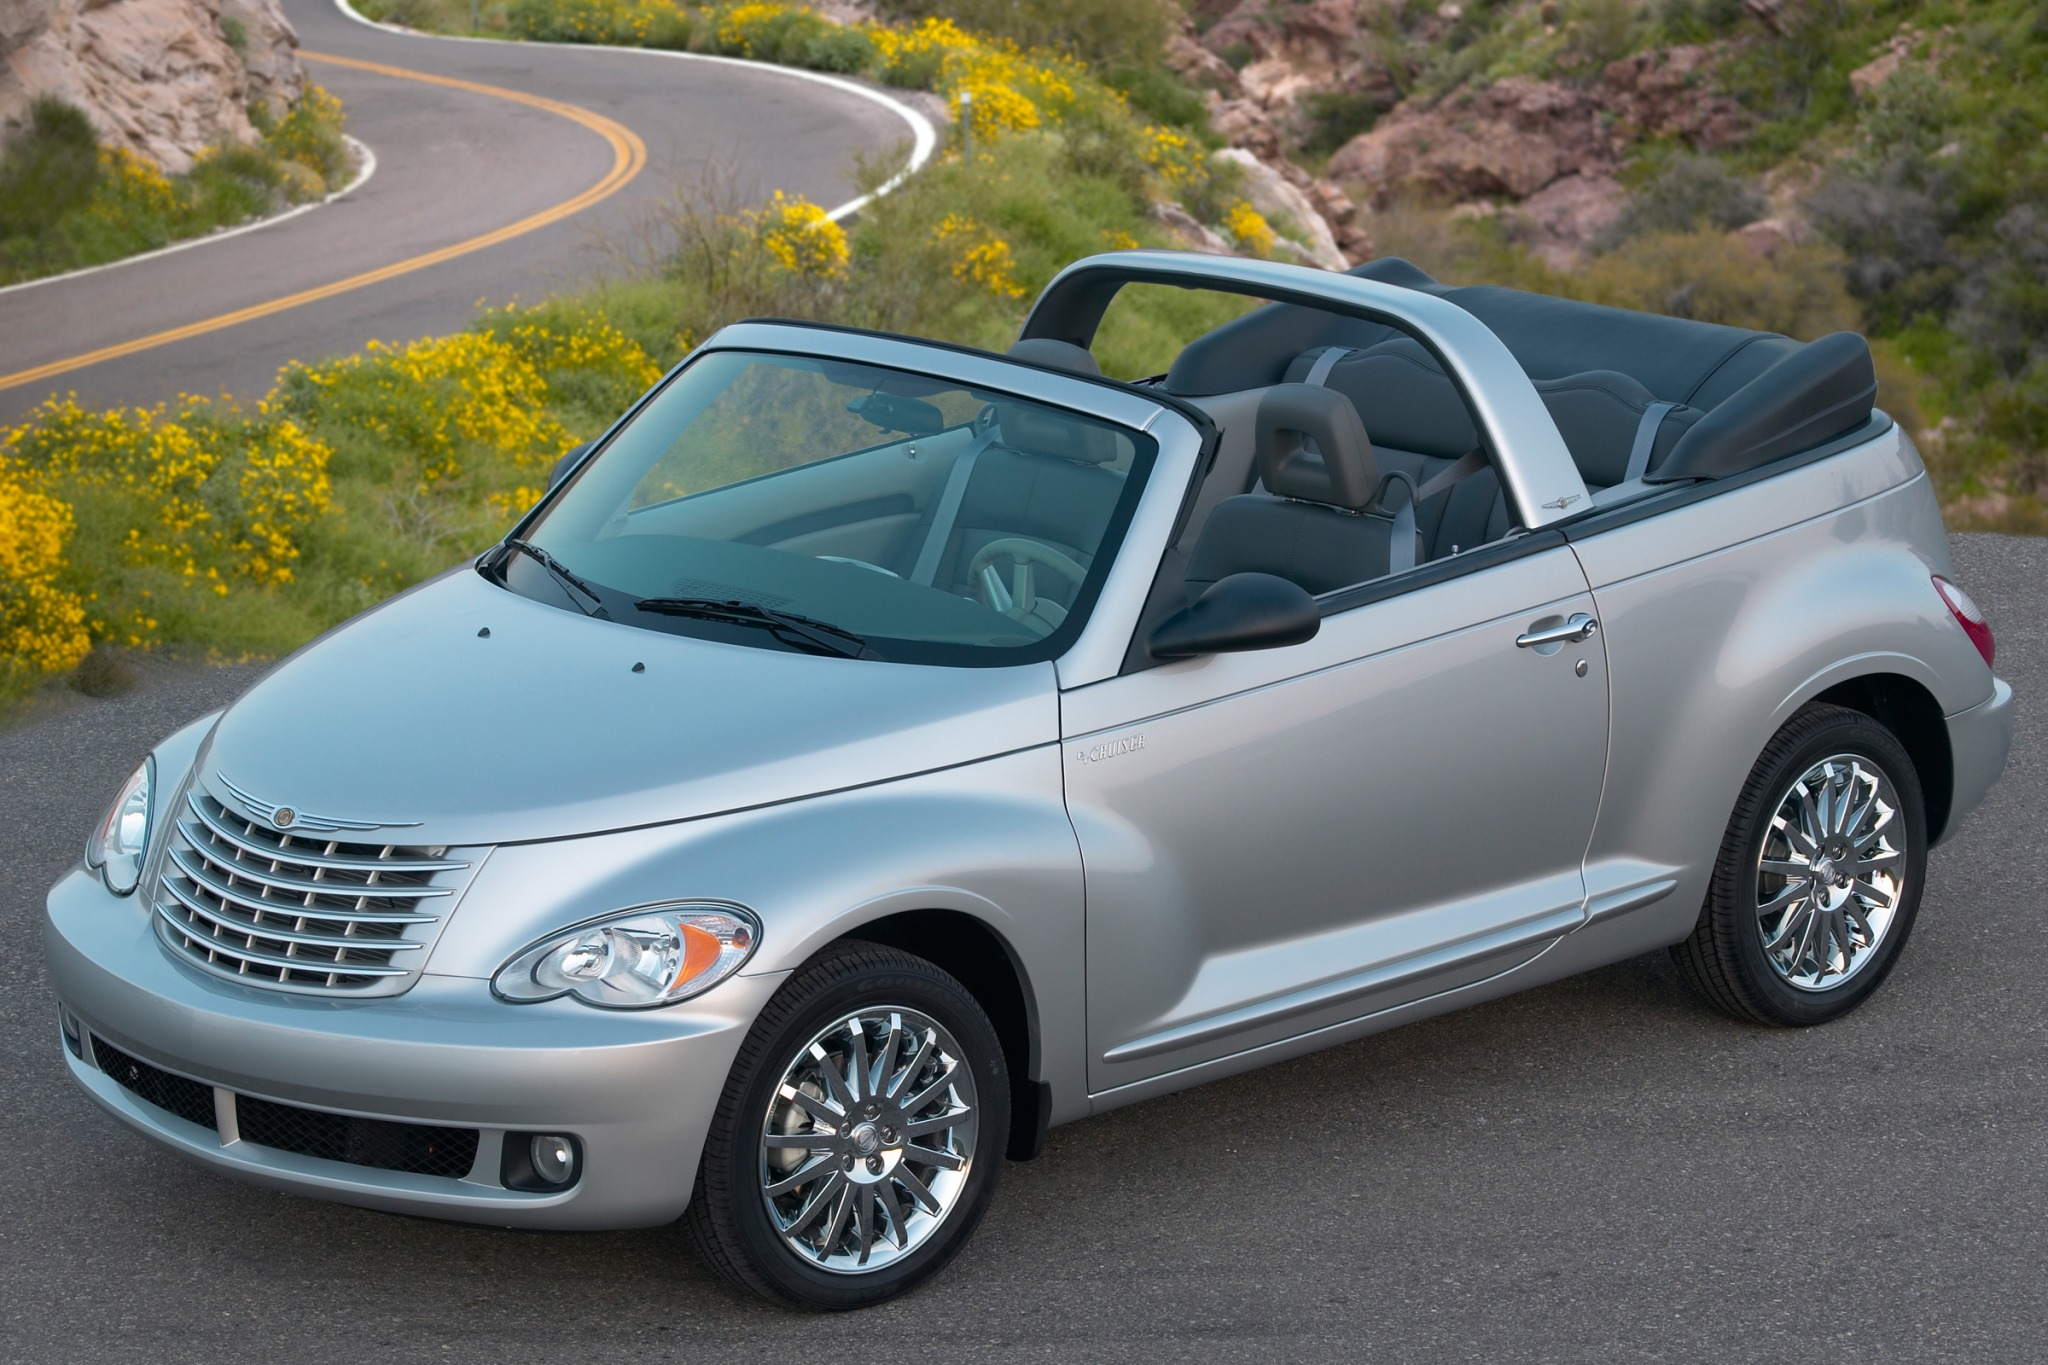 2007 Chrysler PT Cruiser  exterior #2